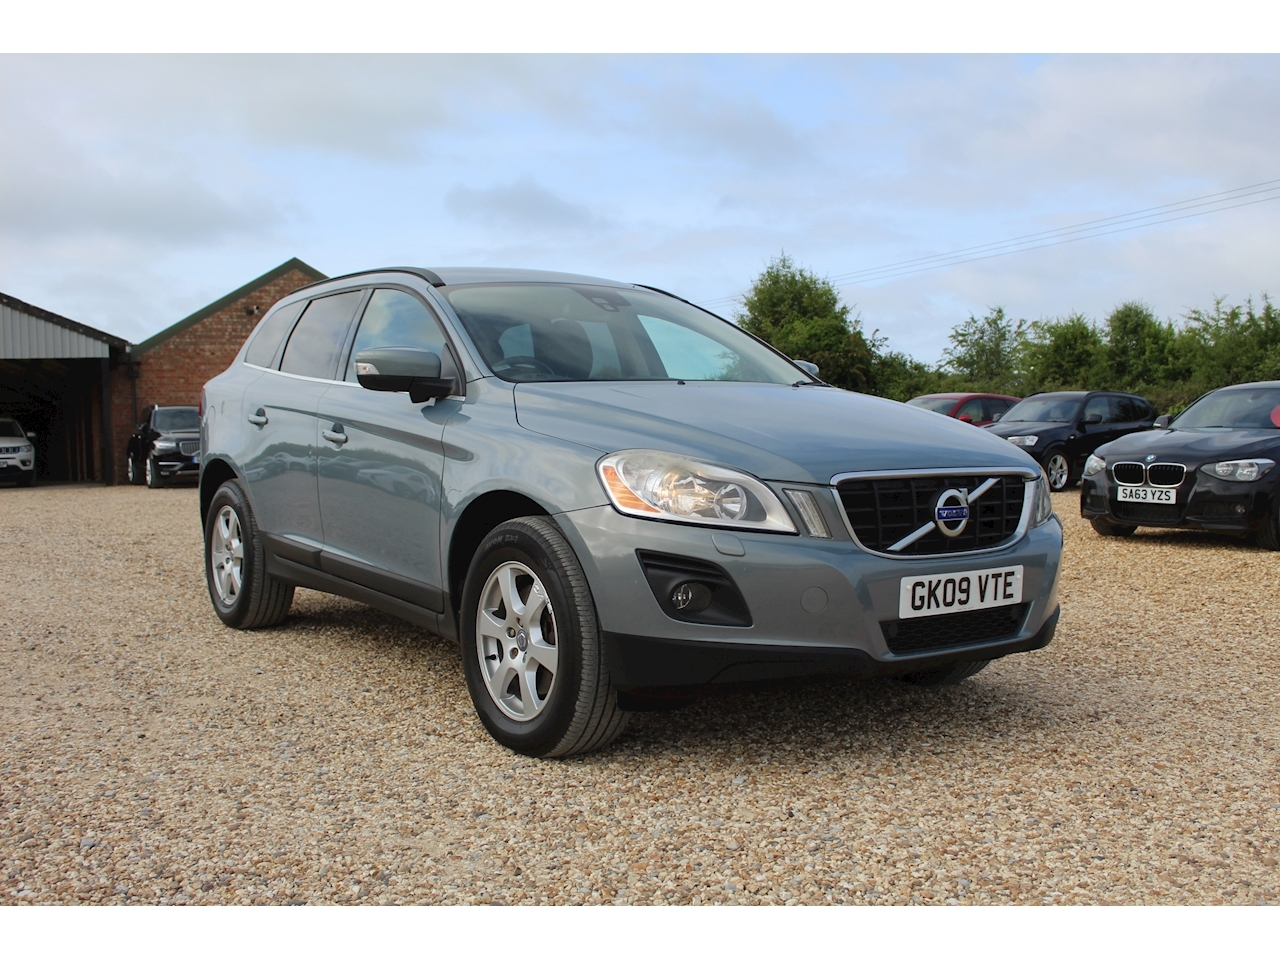 Volvo Xc60 D Se Awd Estate 2.4 Automatic Diesel